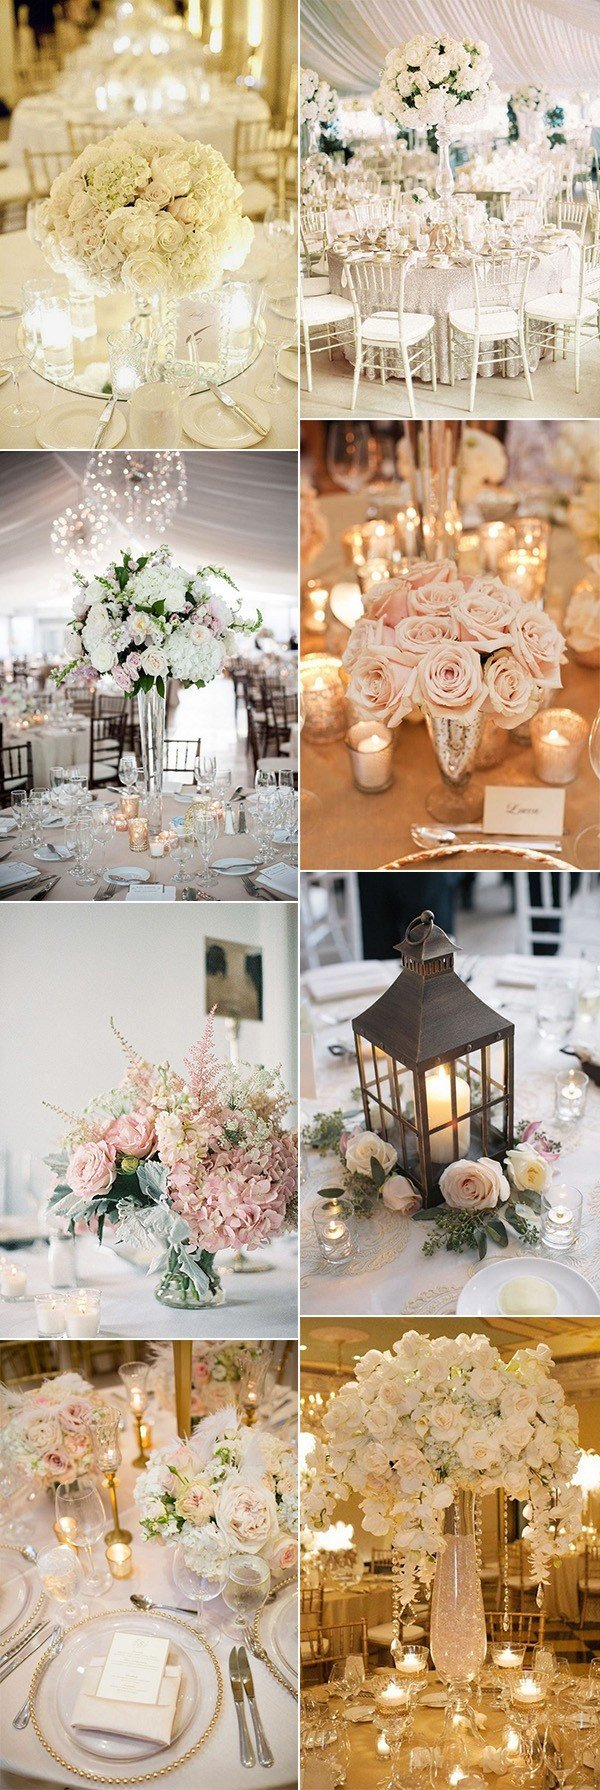 18 Elegant Wedding Centerpiece Ideas for 2018 Trends  Page 2 of 2  Oh Best Day Ever